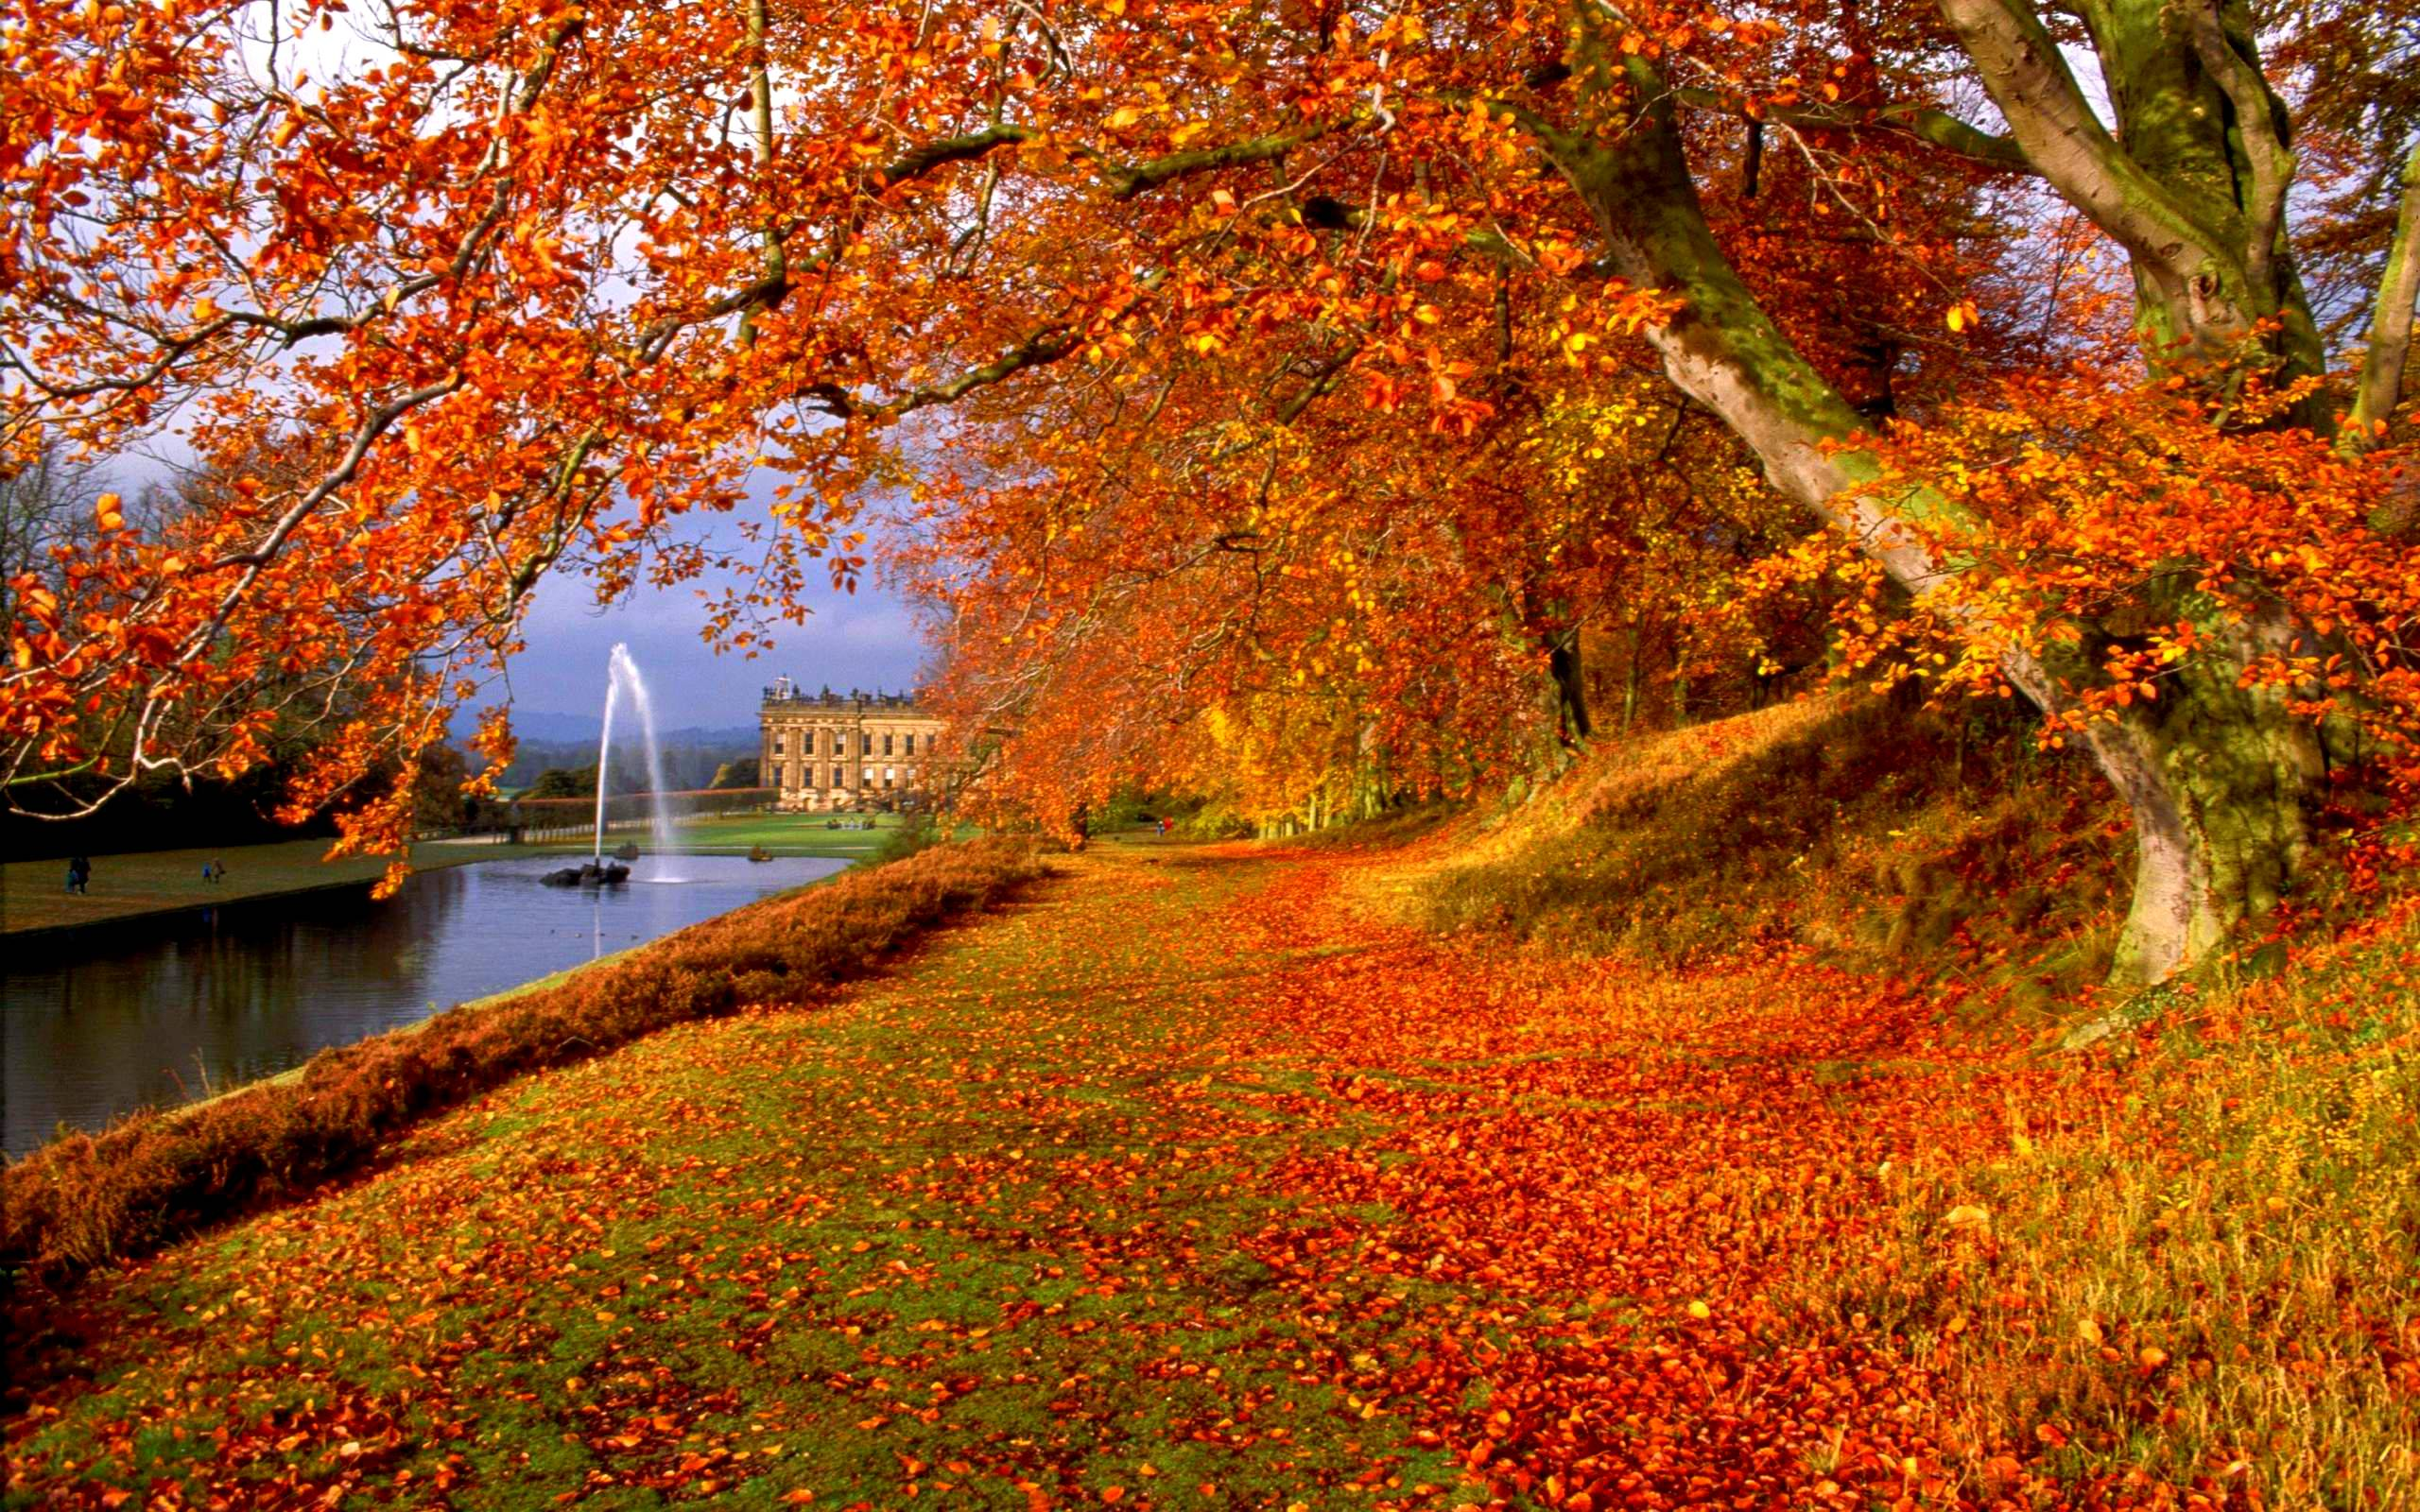 Autumn Backgrounds Image - Wallpaper Cave